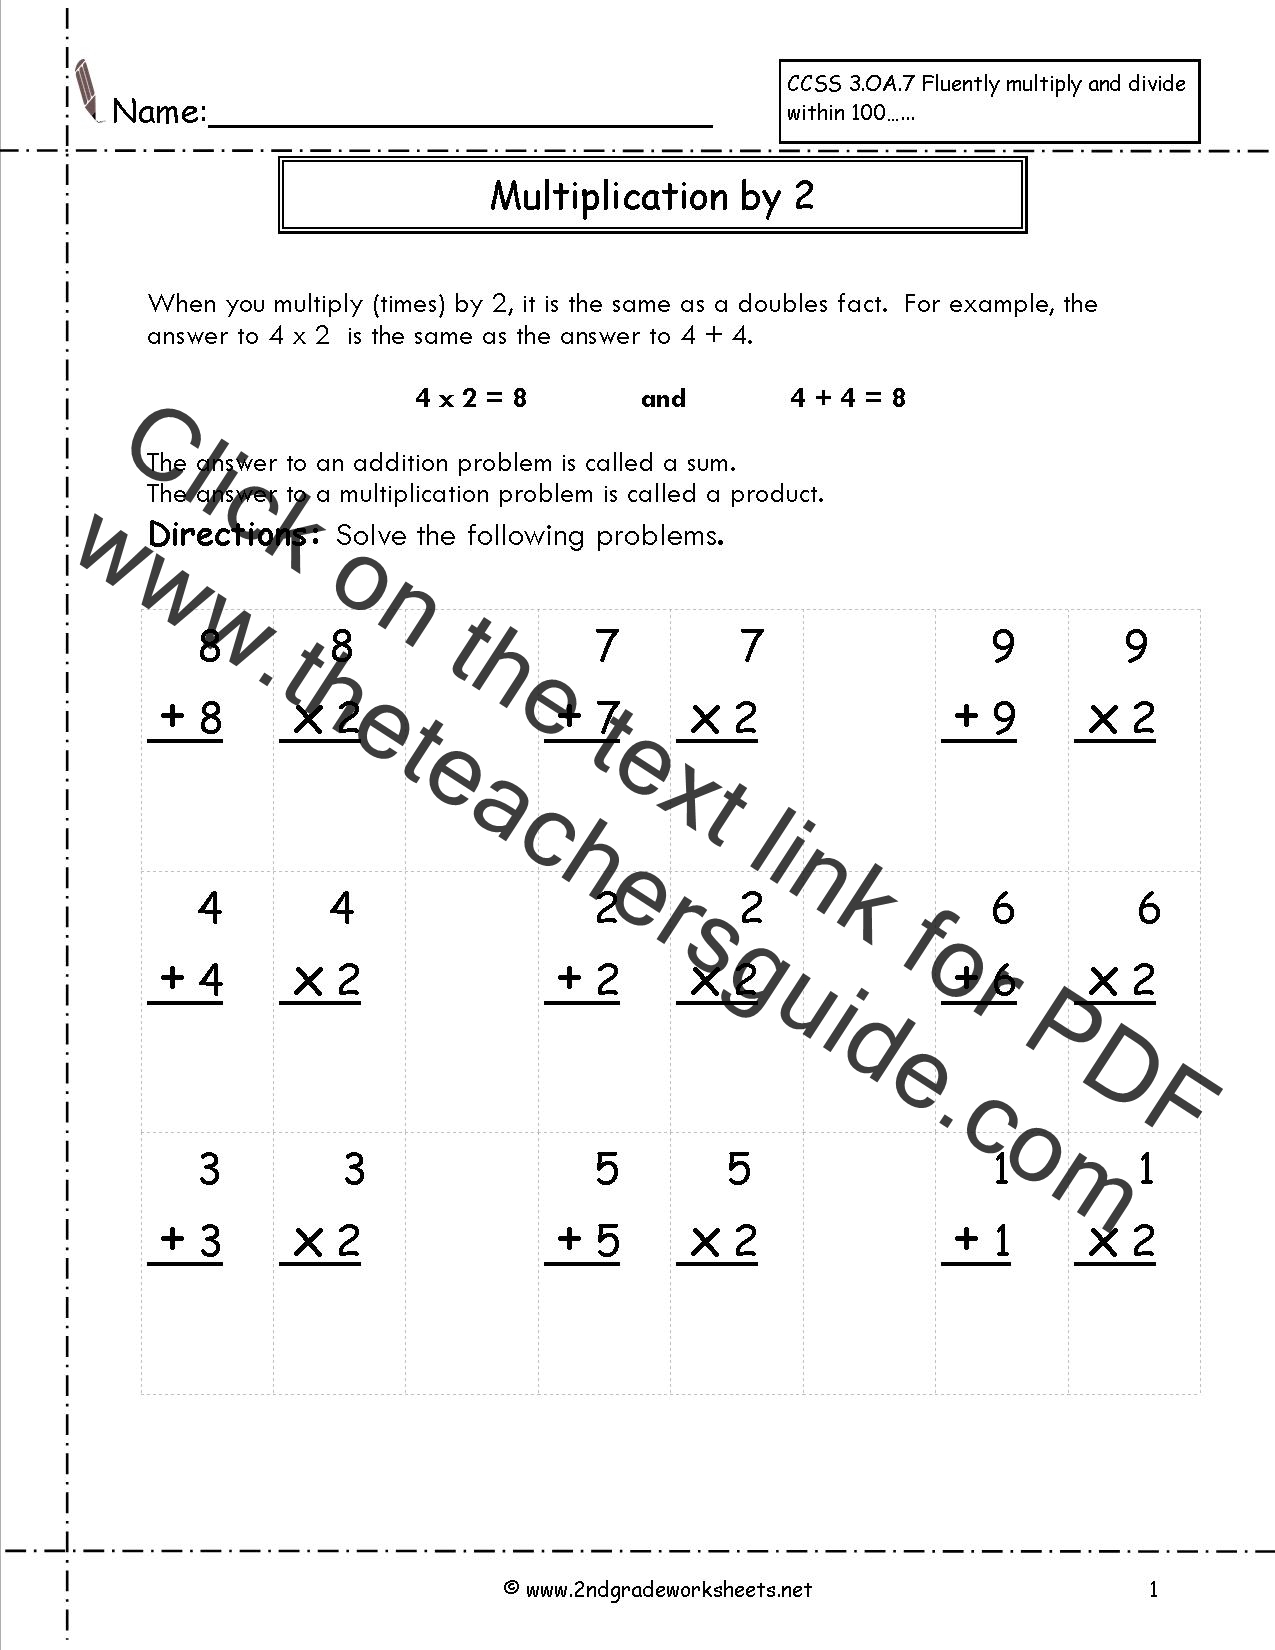 Multiplication 012 Worksheets – Multiplication Facts Worksheet 0-12